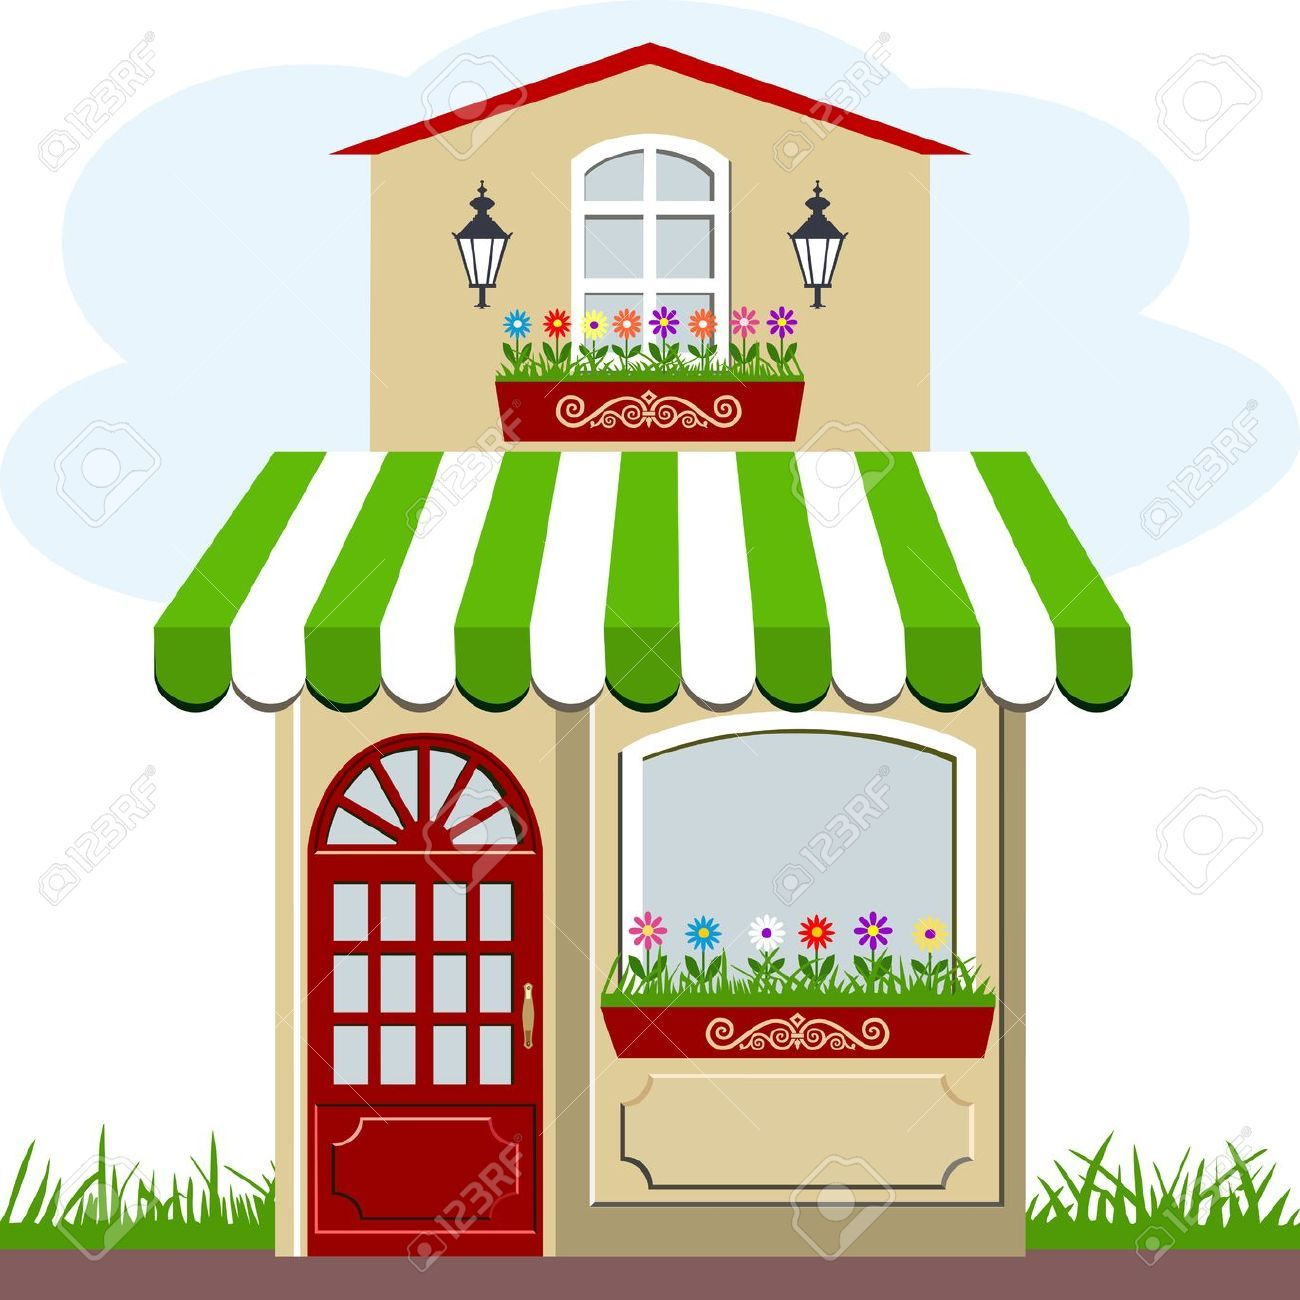 Cute Little House And Store Cute Little Houses Cute House House Clipart